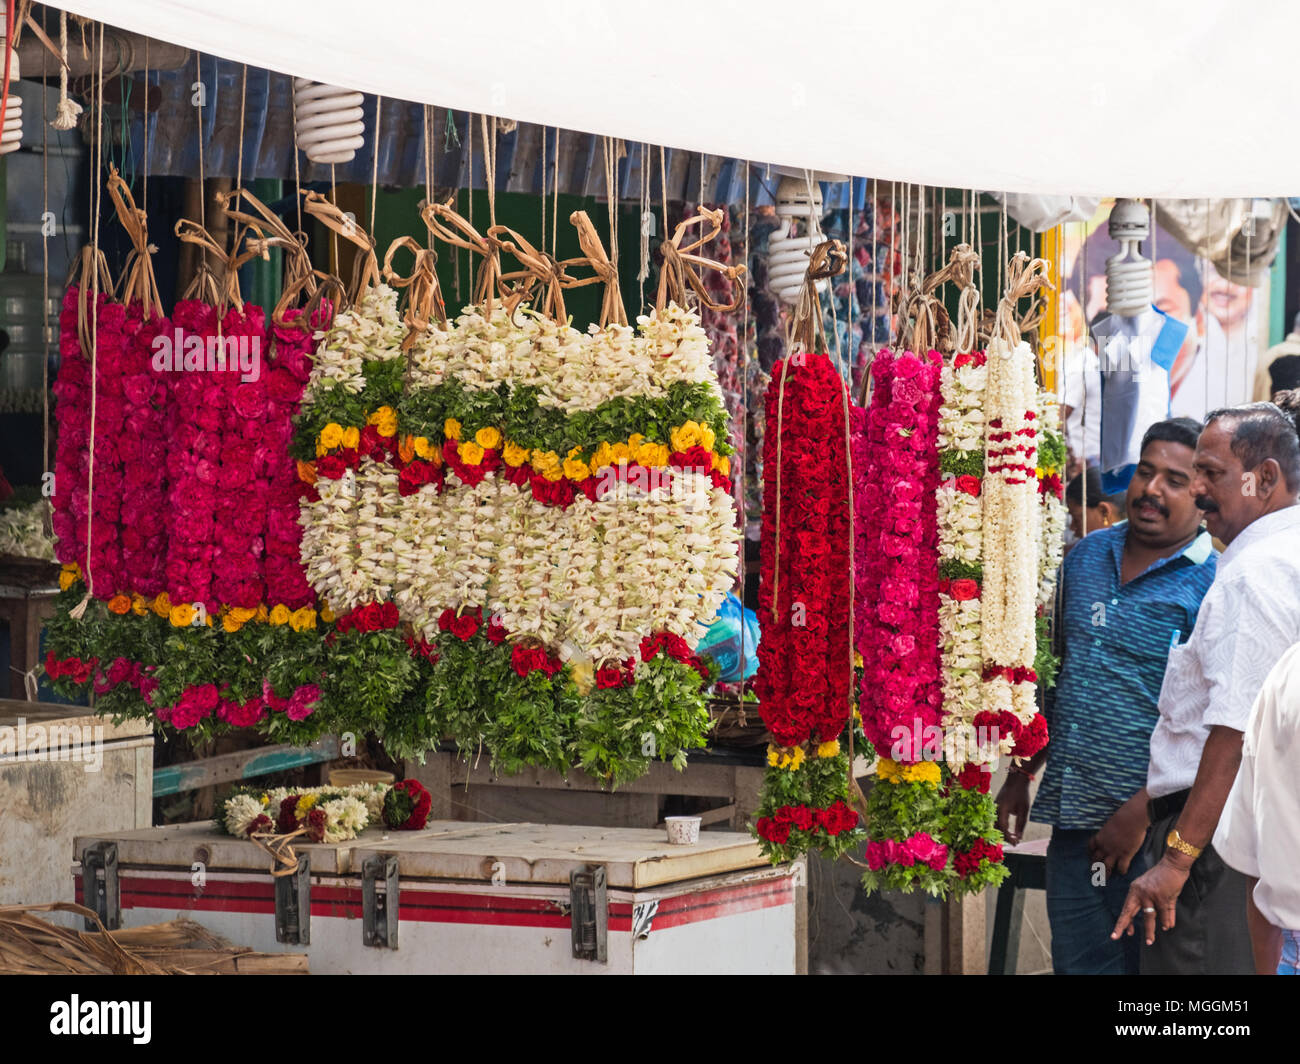 Madurai, India - March 11, 2018: Prospective customers examining garlands for sale in a flower market - Stock Image